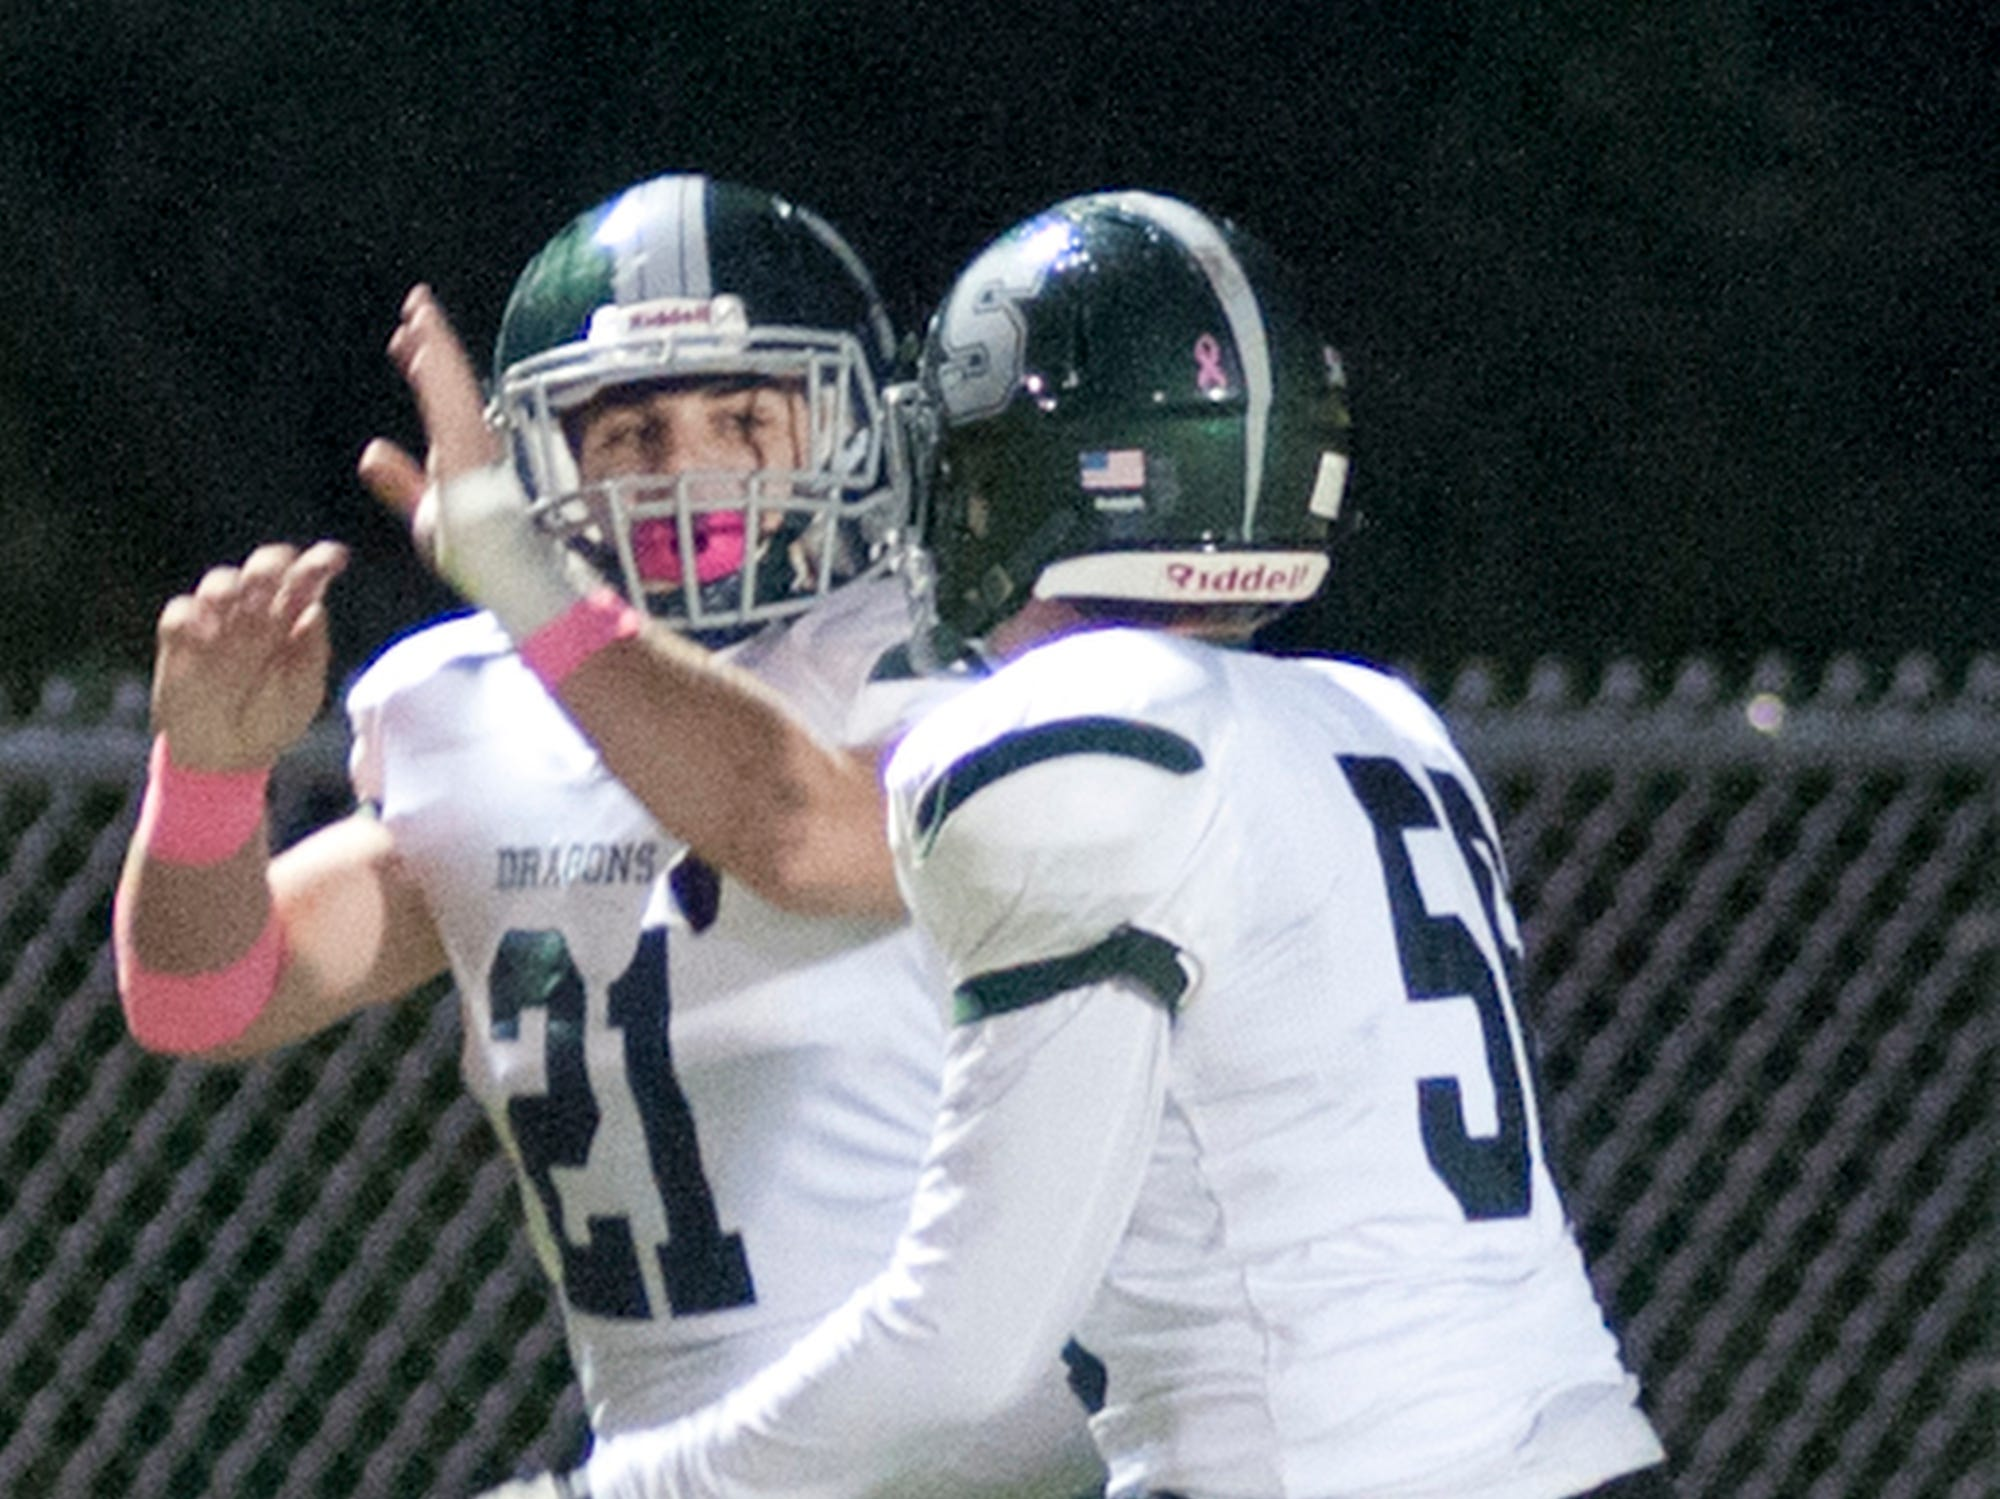 After scoring a touchdown, South Oldham running back Keaton Martin slaps hands with a teammate. Oct. 12, 2018